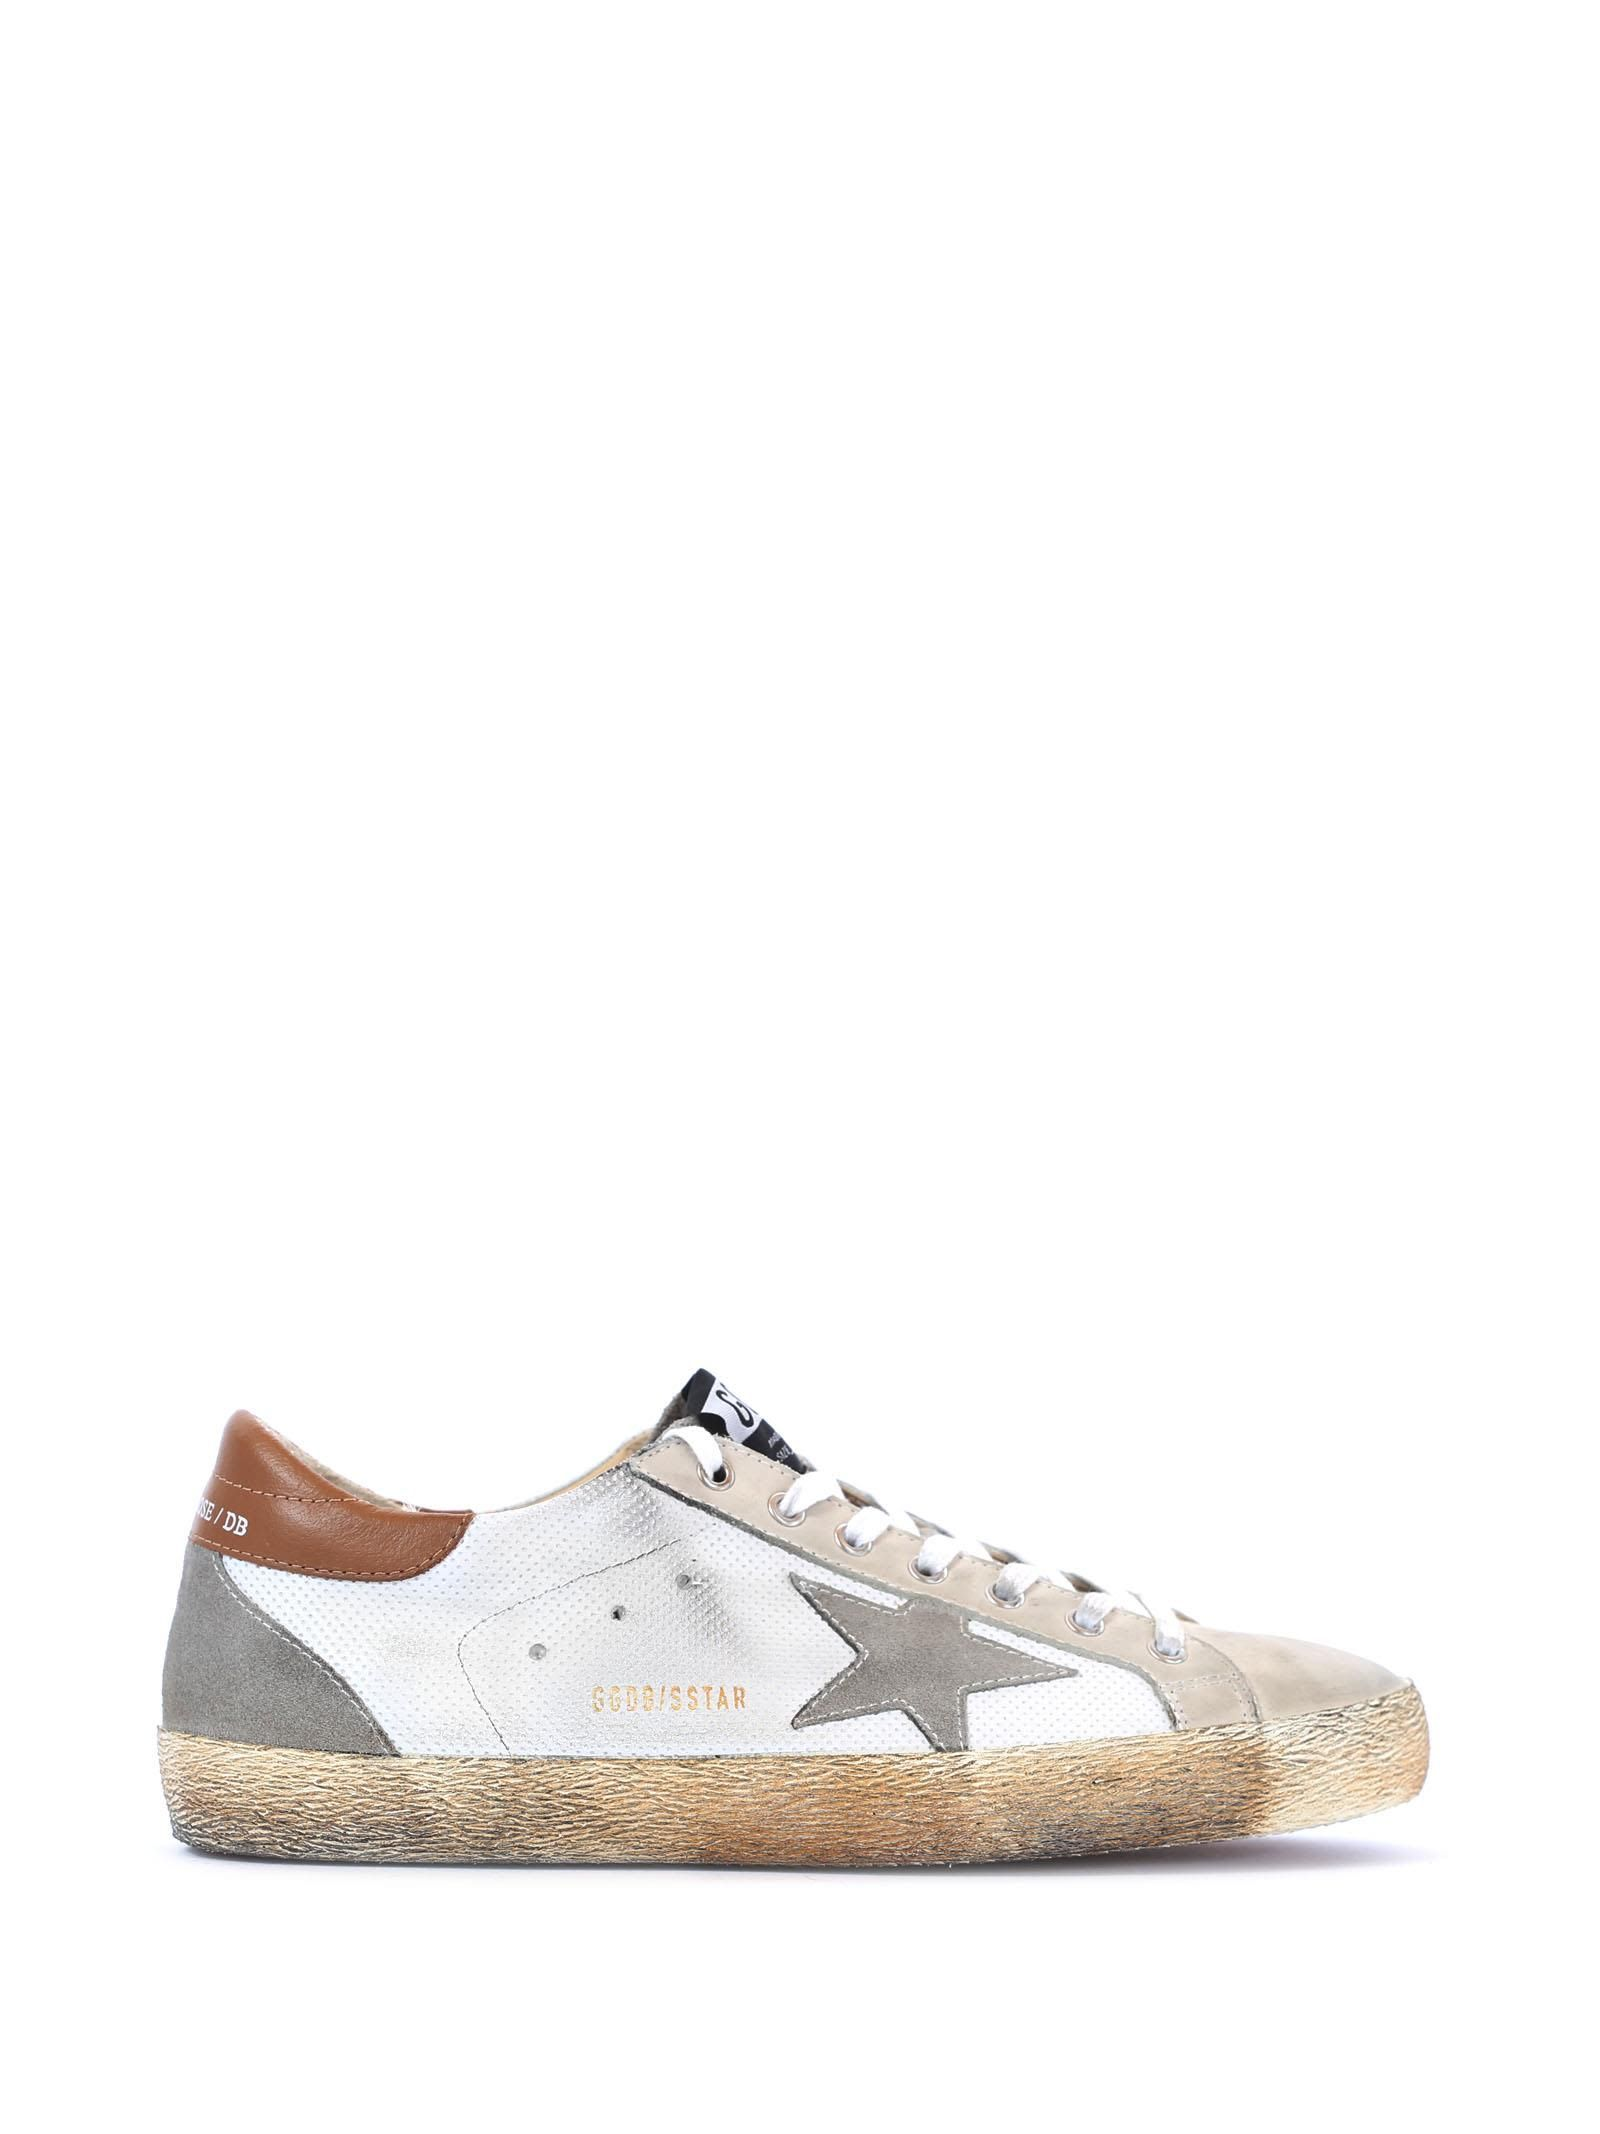 new arrival d4fa5 865d9 GOLDEN GOOSE SUPERSTAR SNEAKERS.  goldengoose  shoes